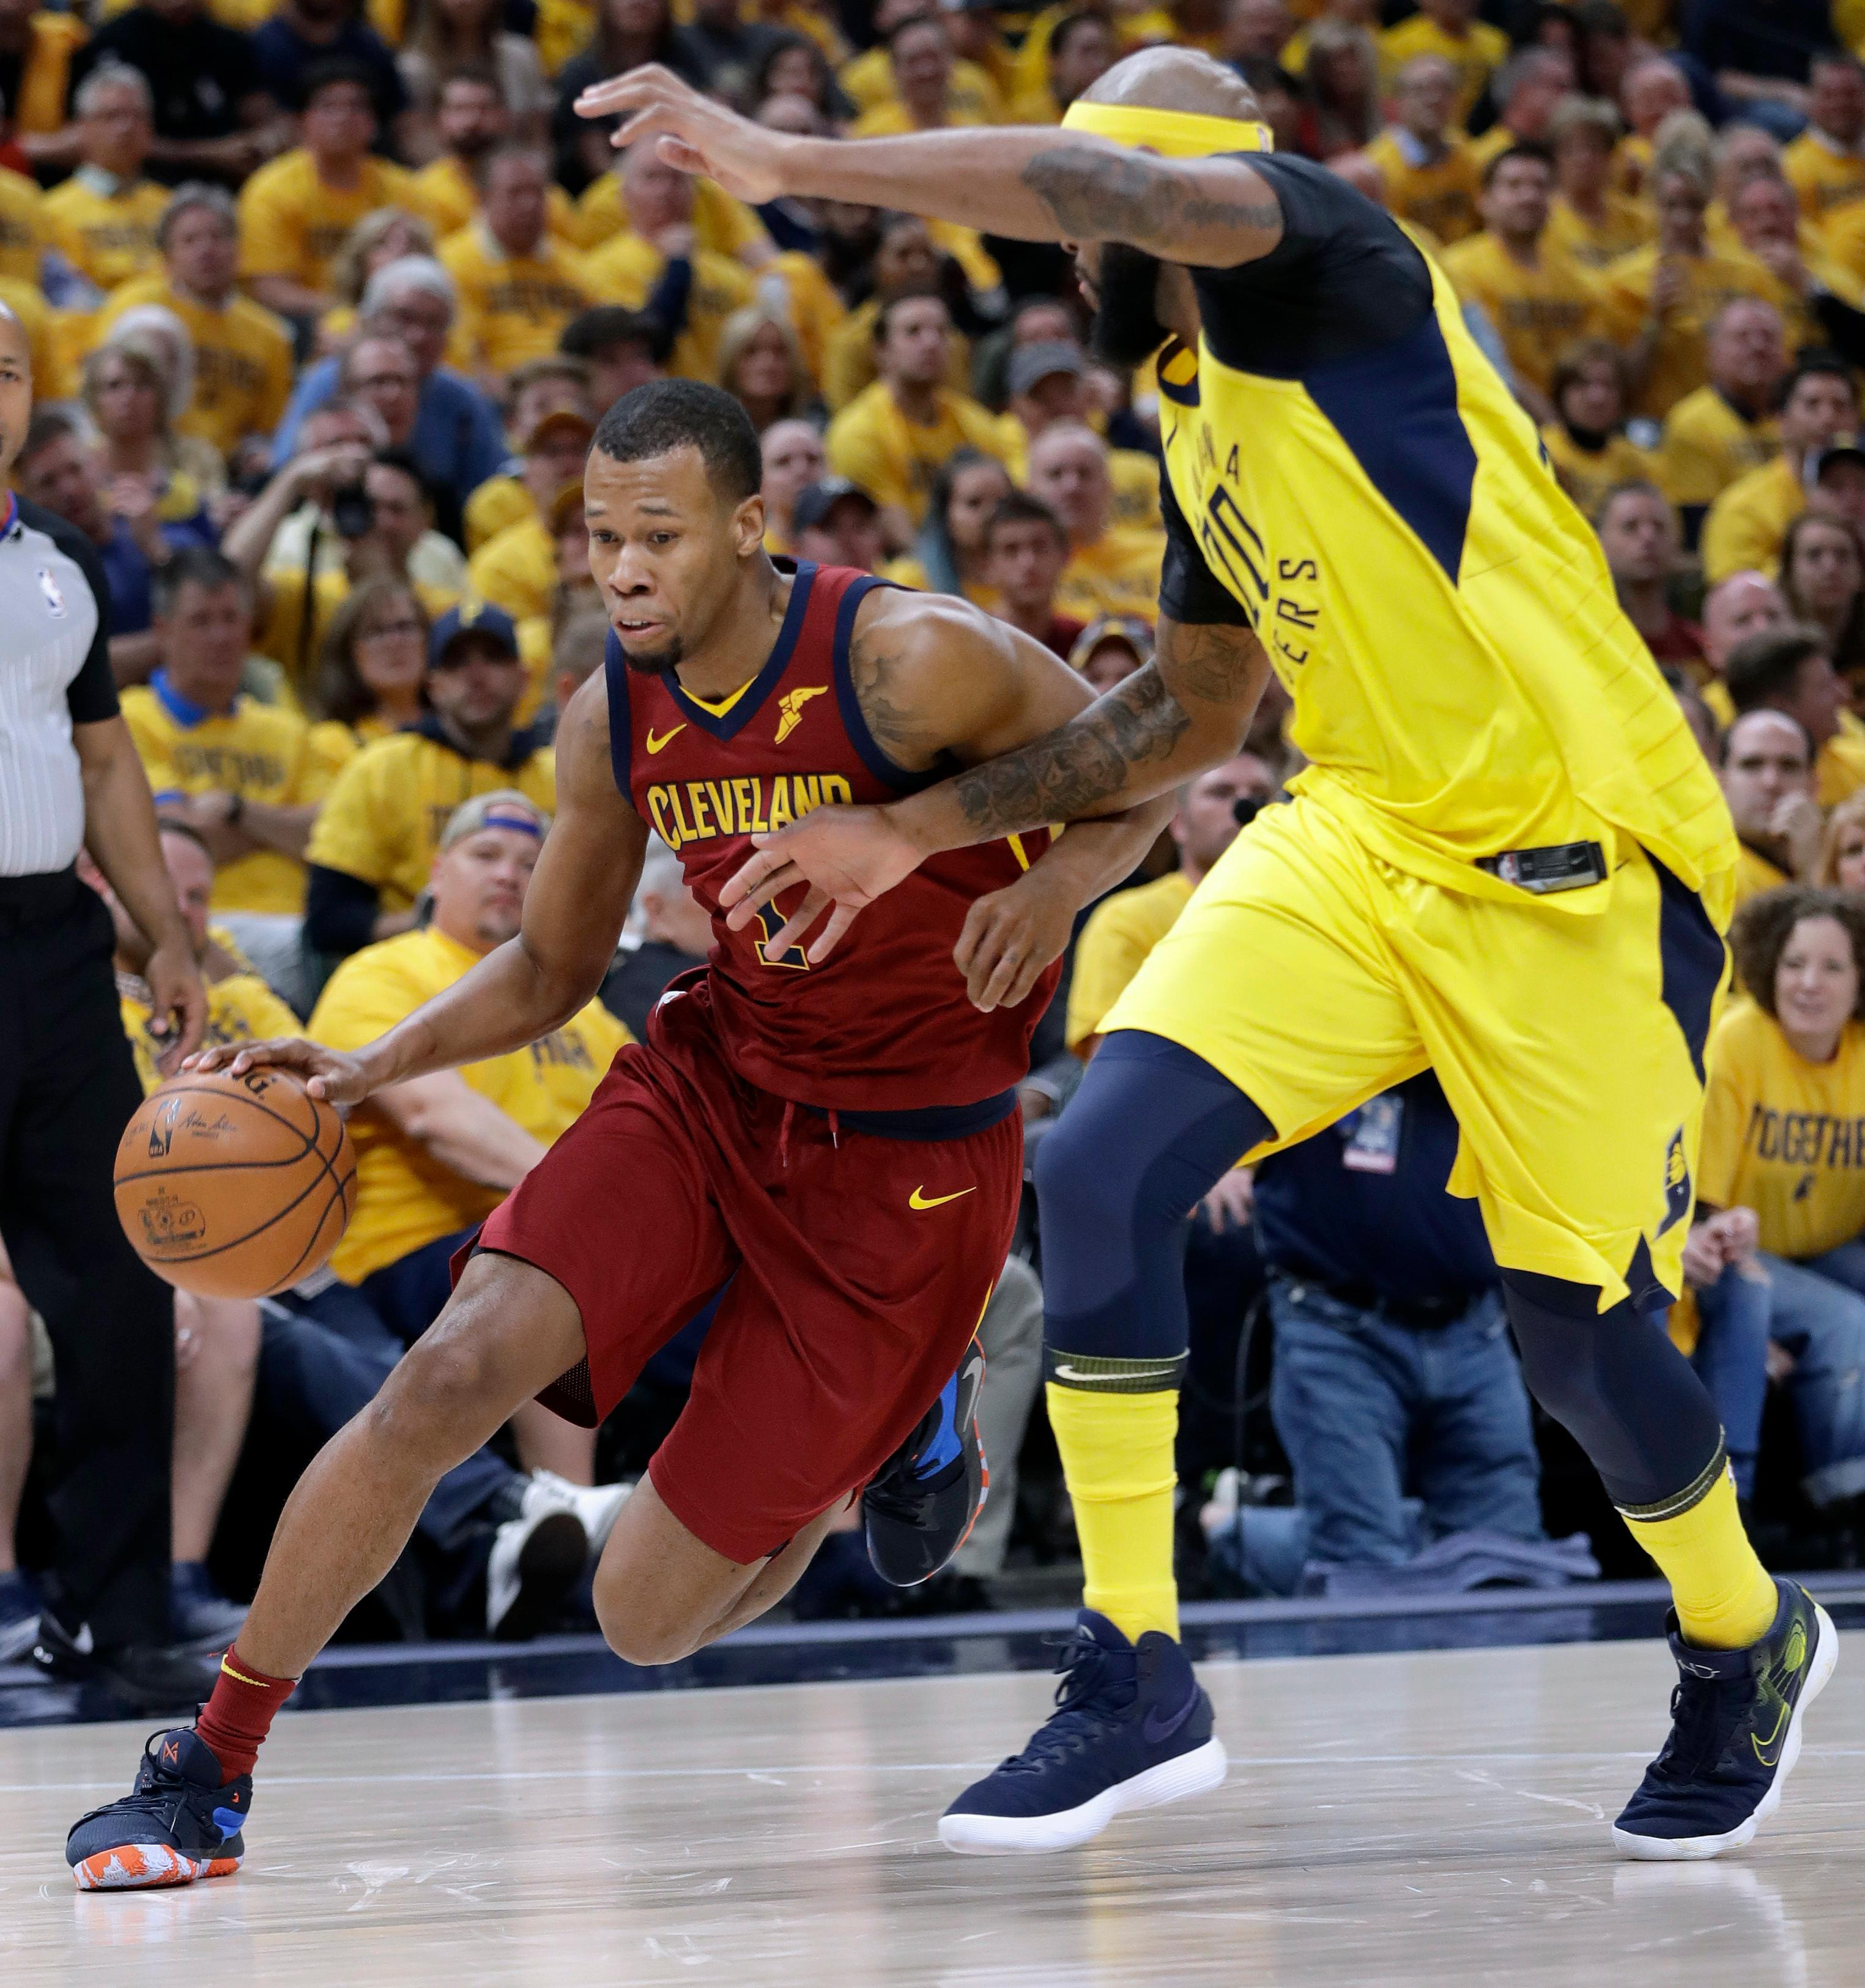 FILE - In this April 27, 2018, file photo, Cleveland Cavaliers' Rodney Hood, left, heads to the basket past Indiana Pacers' Trevor Booker during the first half of Game 6 of a first-round NBA basketball playoff series, in Indianapolis. A person familiar with the situation says the Cavaliers will not fine or suspend forward Rodney Hood for refusing to enter Game 4 against Toronto. The Athletic reported that Hood angered his teammates and others in the organization when he declined coach Tyronn Lue's request to replace LeBron James with 7:38 left and the Cavs leading by 30. Hood spoke to team officials about the incident Tuesday, May 8, 2018, and will not be disciplined, said the person who spoke to the Associated Press on condition of anonymity because of sensitivity.(AP Photo/Darron Cummings, File)